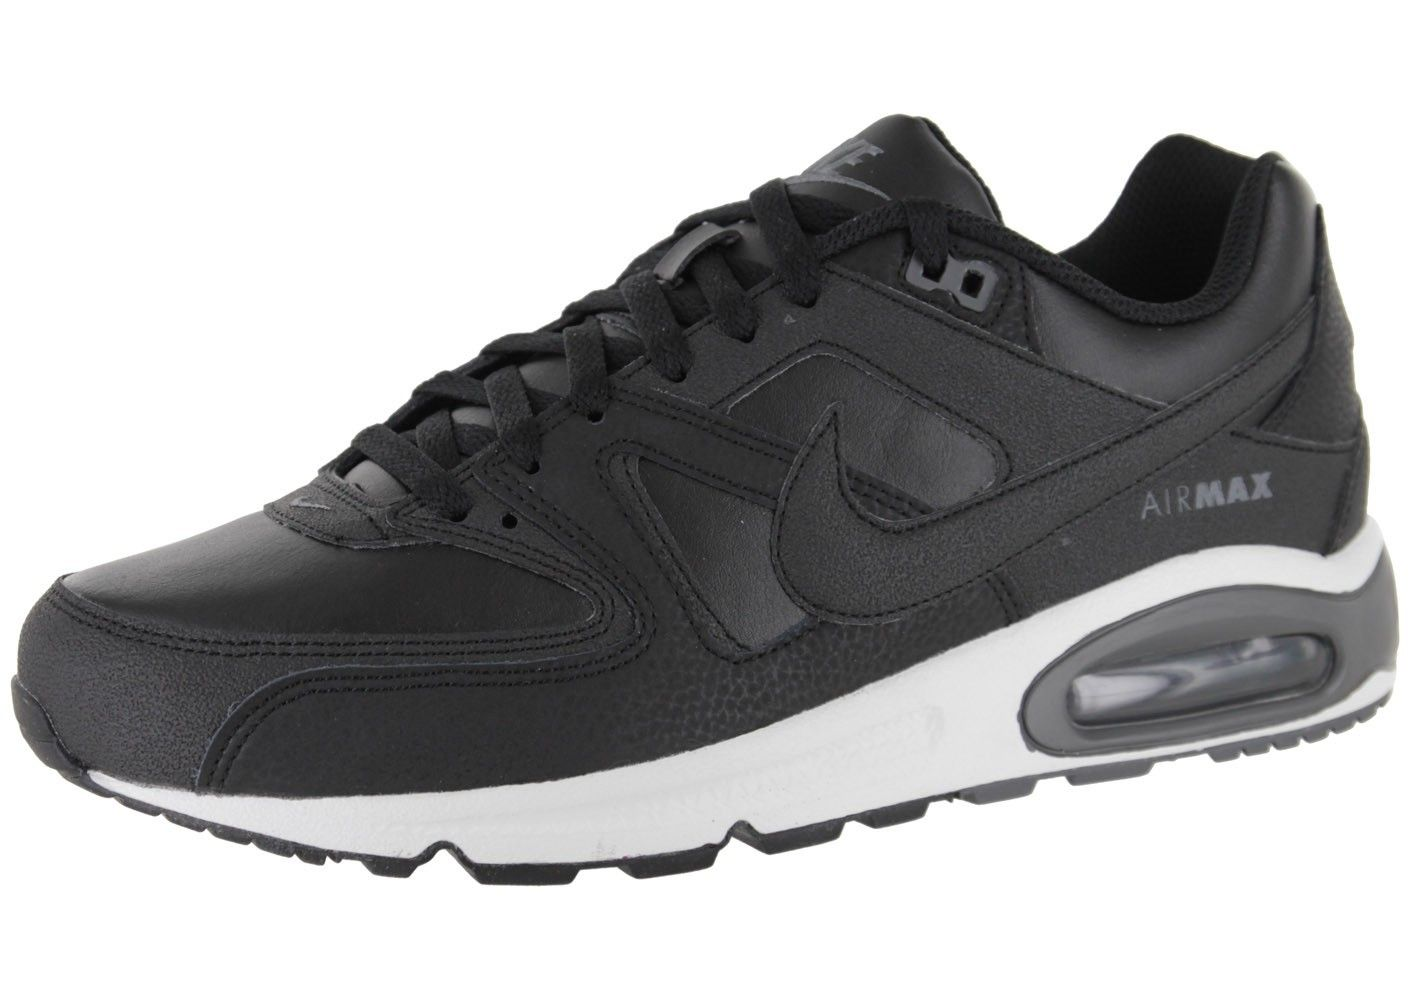 Heren Nike Air Max Command Leer Zwart Et Wit.Good quality!You are worthy to  wear it .